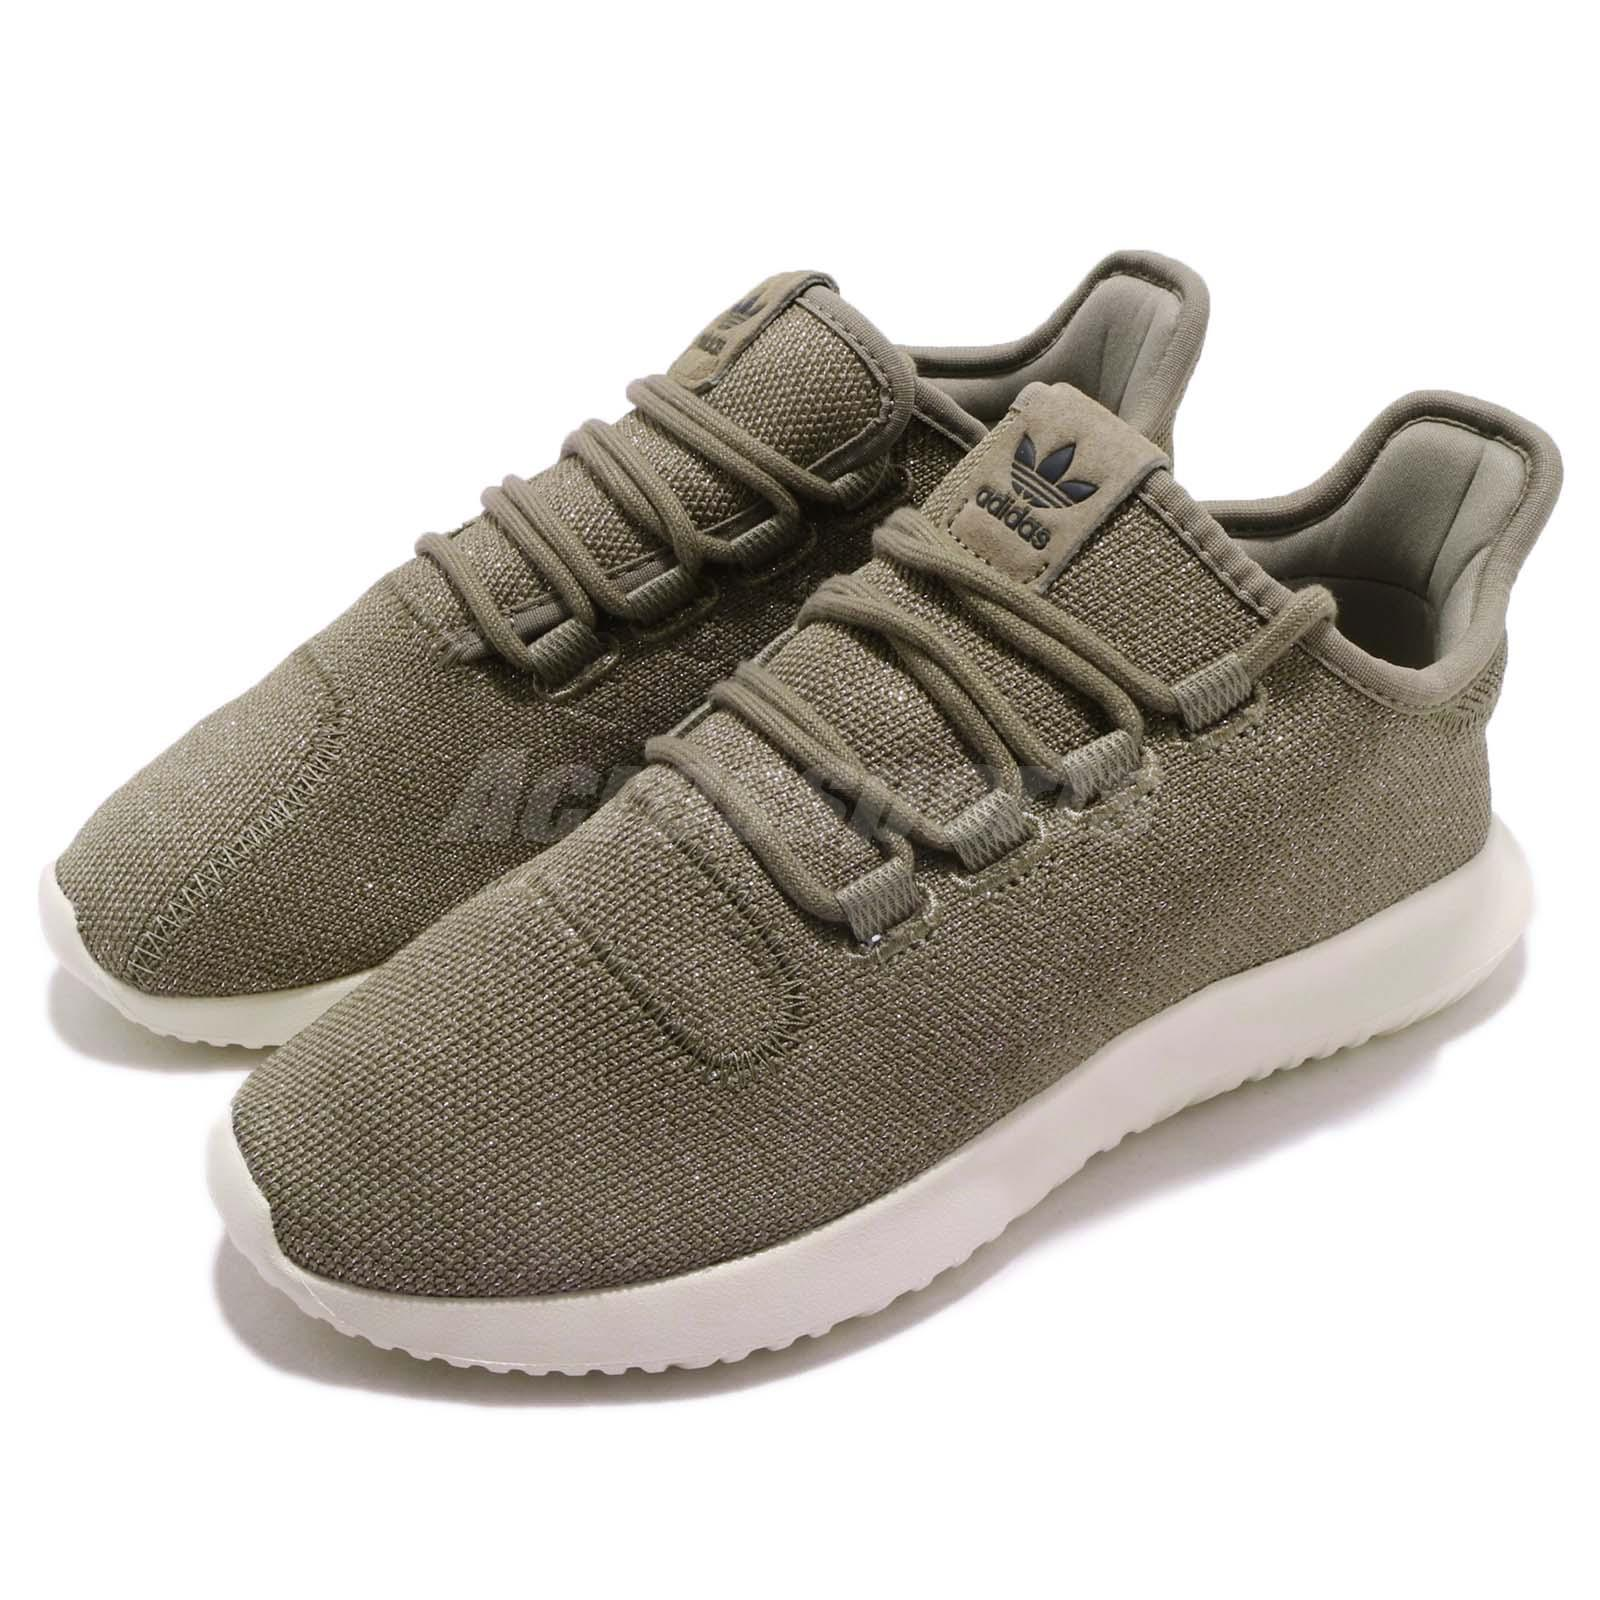 45beb525e6f Details about adidas Originals Tubular Shadow W Steel Chalk White Women  Running Shoes BY9738